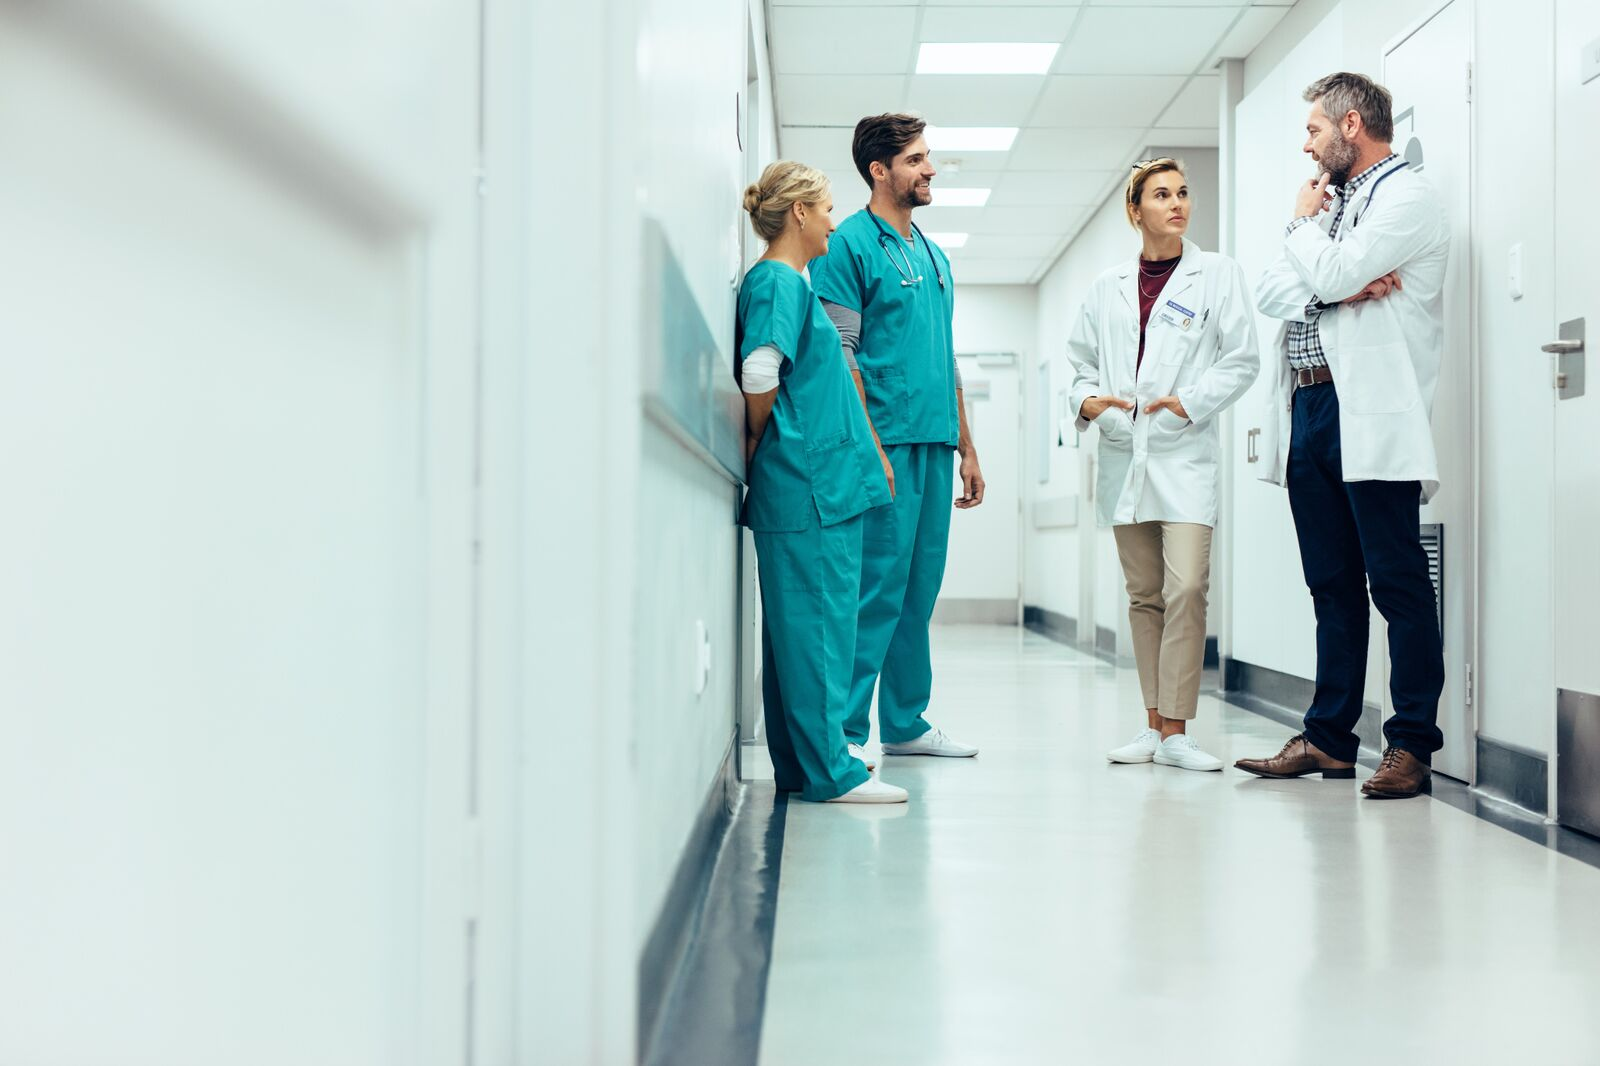 People in a hospital | Photo: Shutterstock